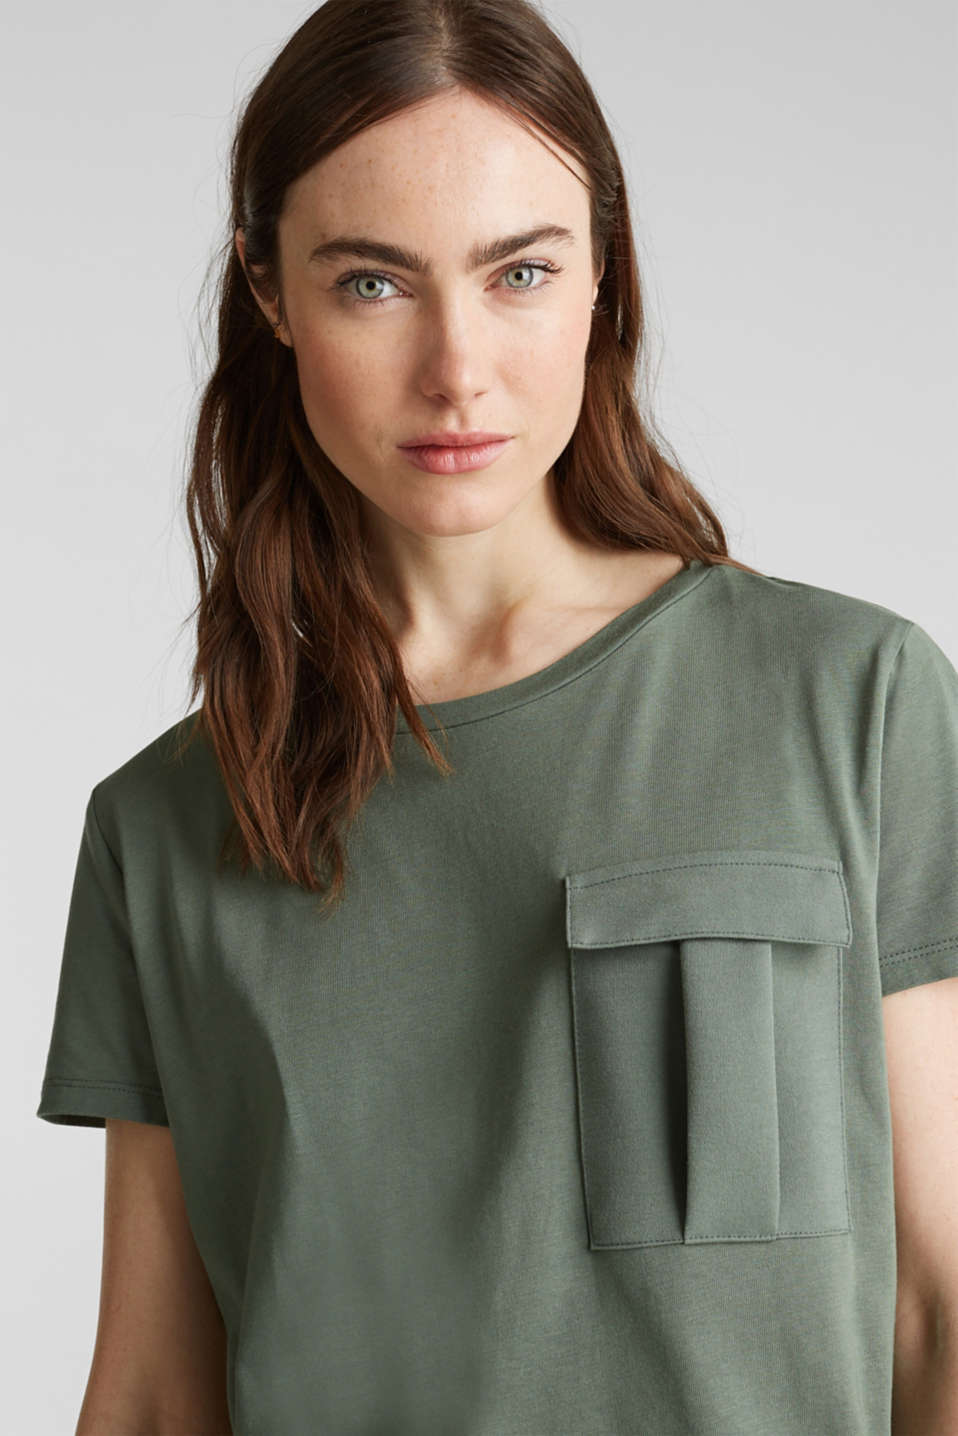 Utility top with a breast pocket, KHAKI GREEN, detail image number 2